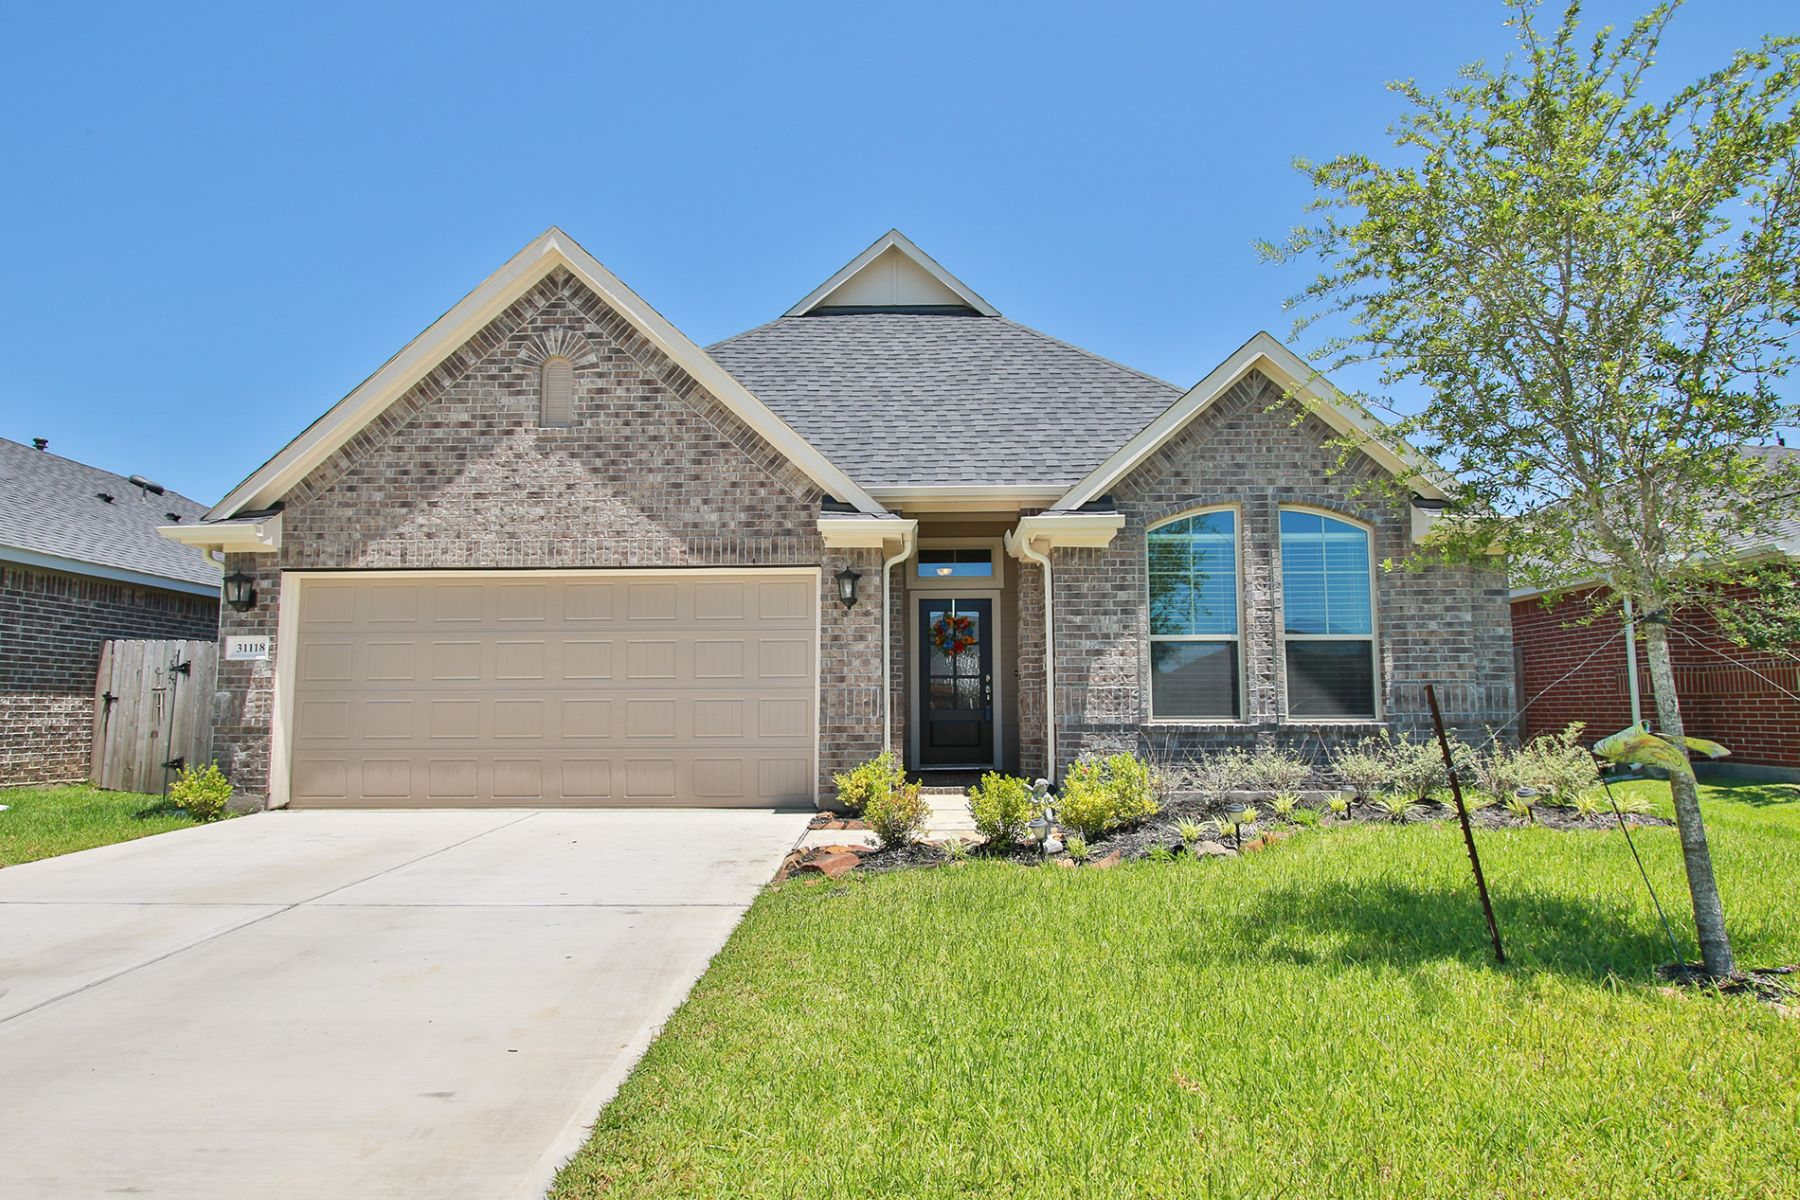 Single Family Homes for Sale at 31118 Gulf Cypress Lane Hockley, Texas 77447 United States